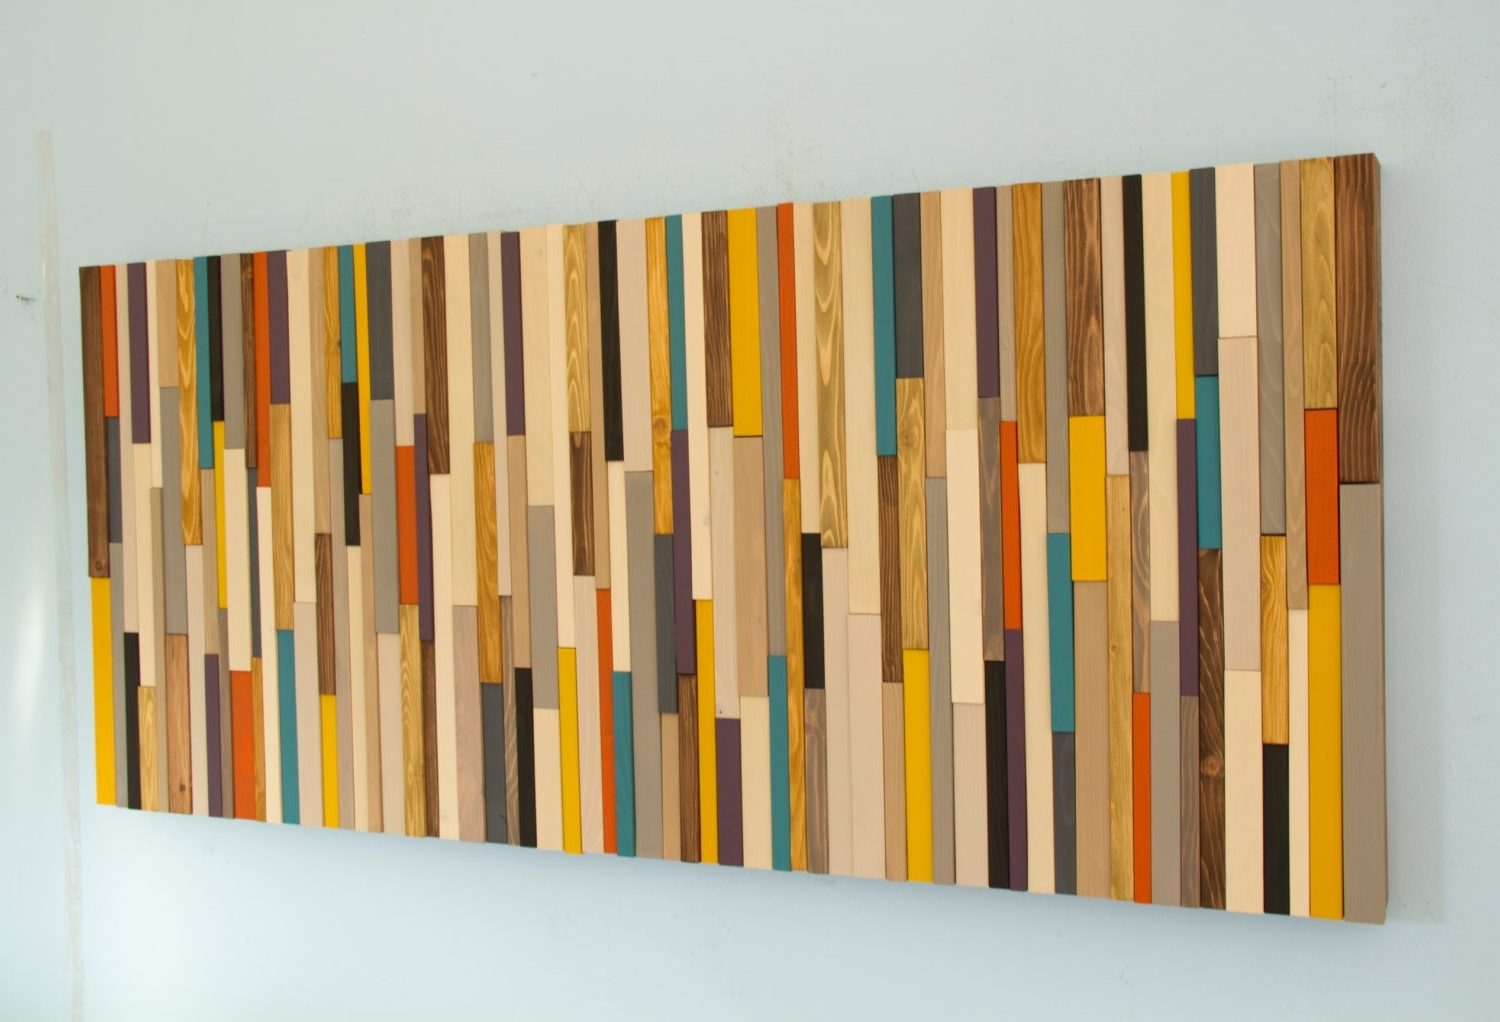 Mid Century Wall Art Within Popular Mid Century Wall Art, Reclaimed Wood Art Sculpture, Painted Wood (View 10 of 20)